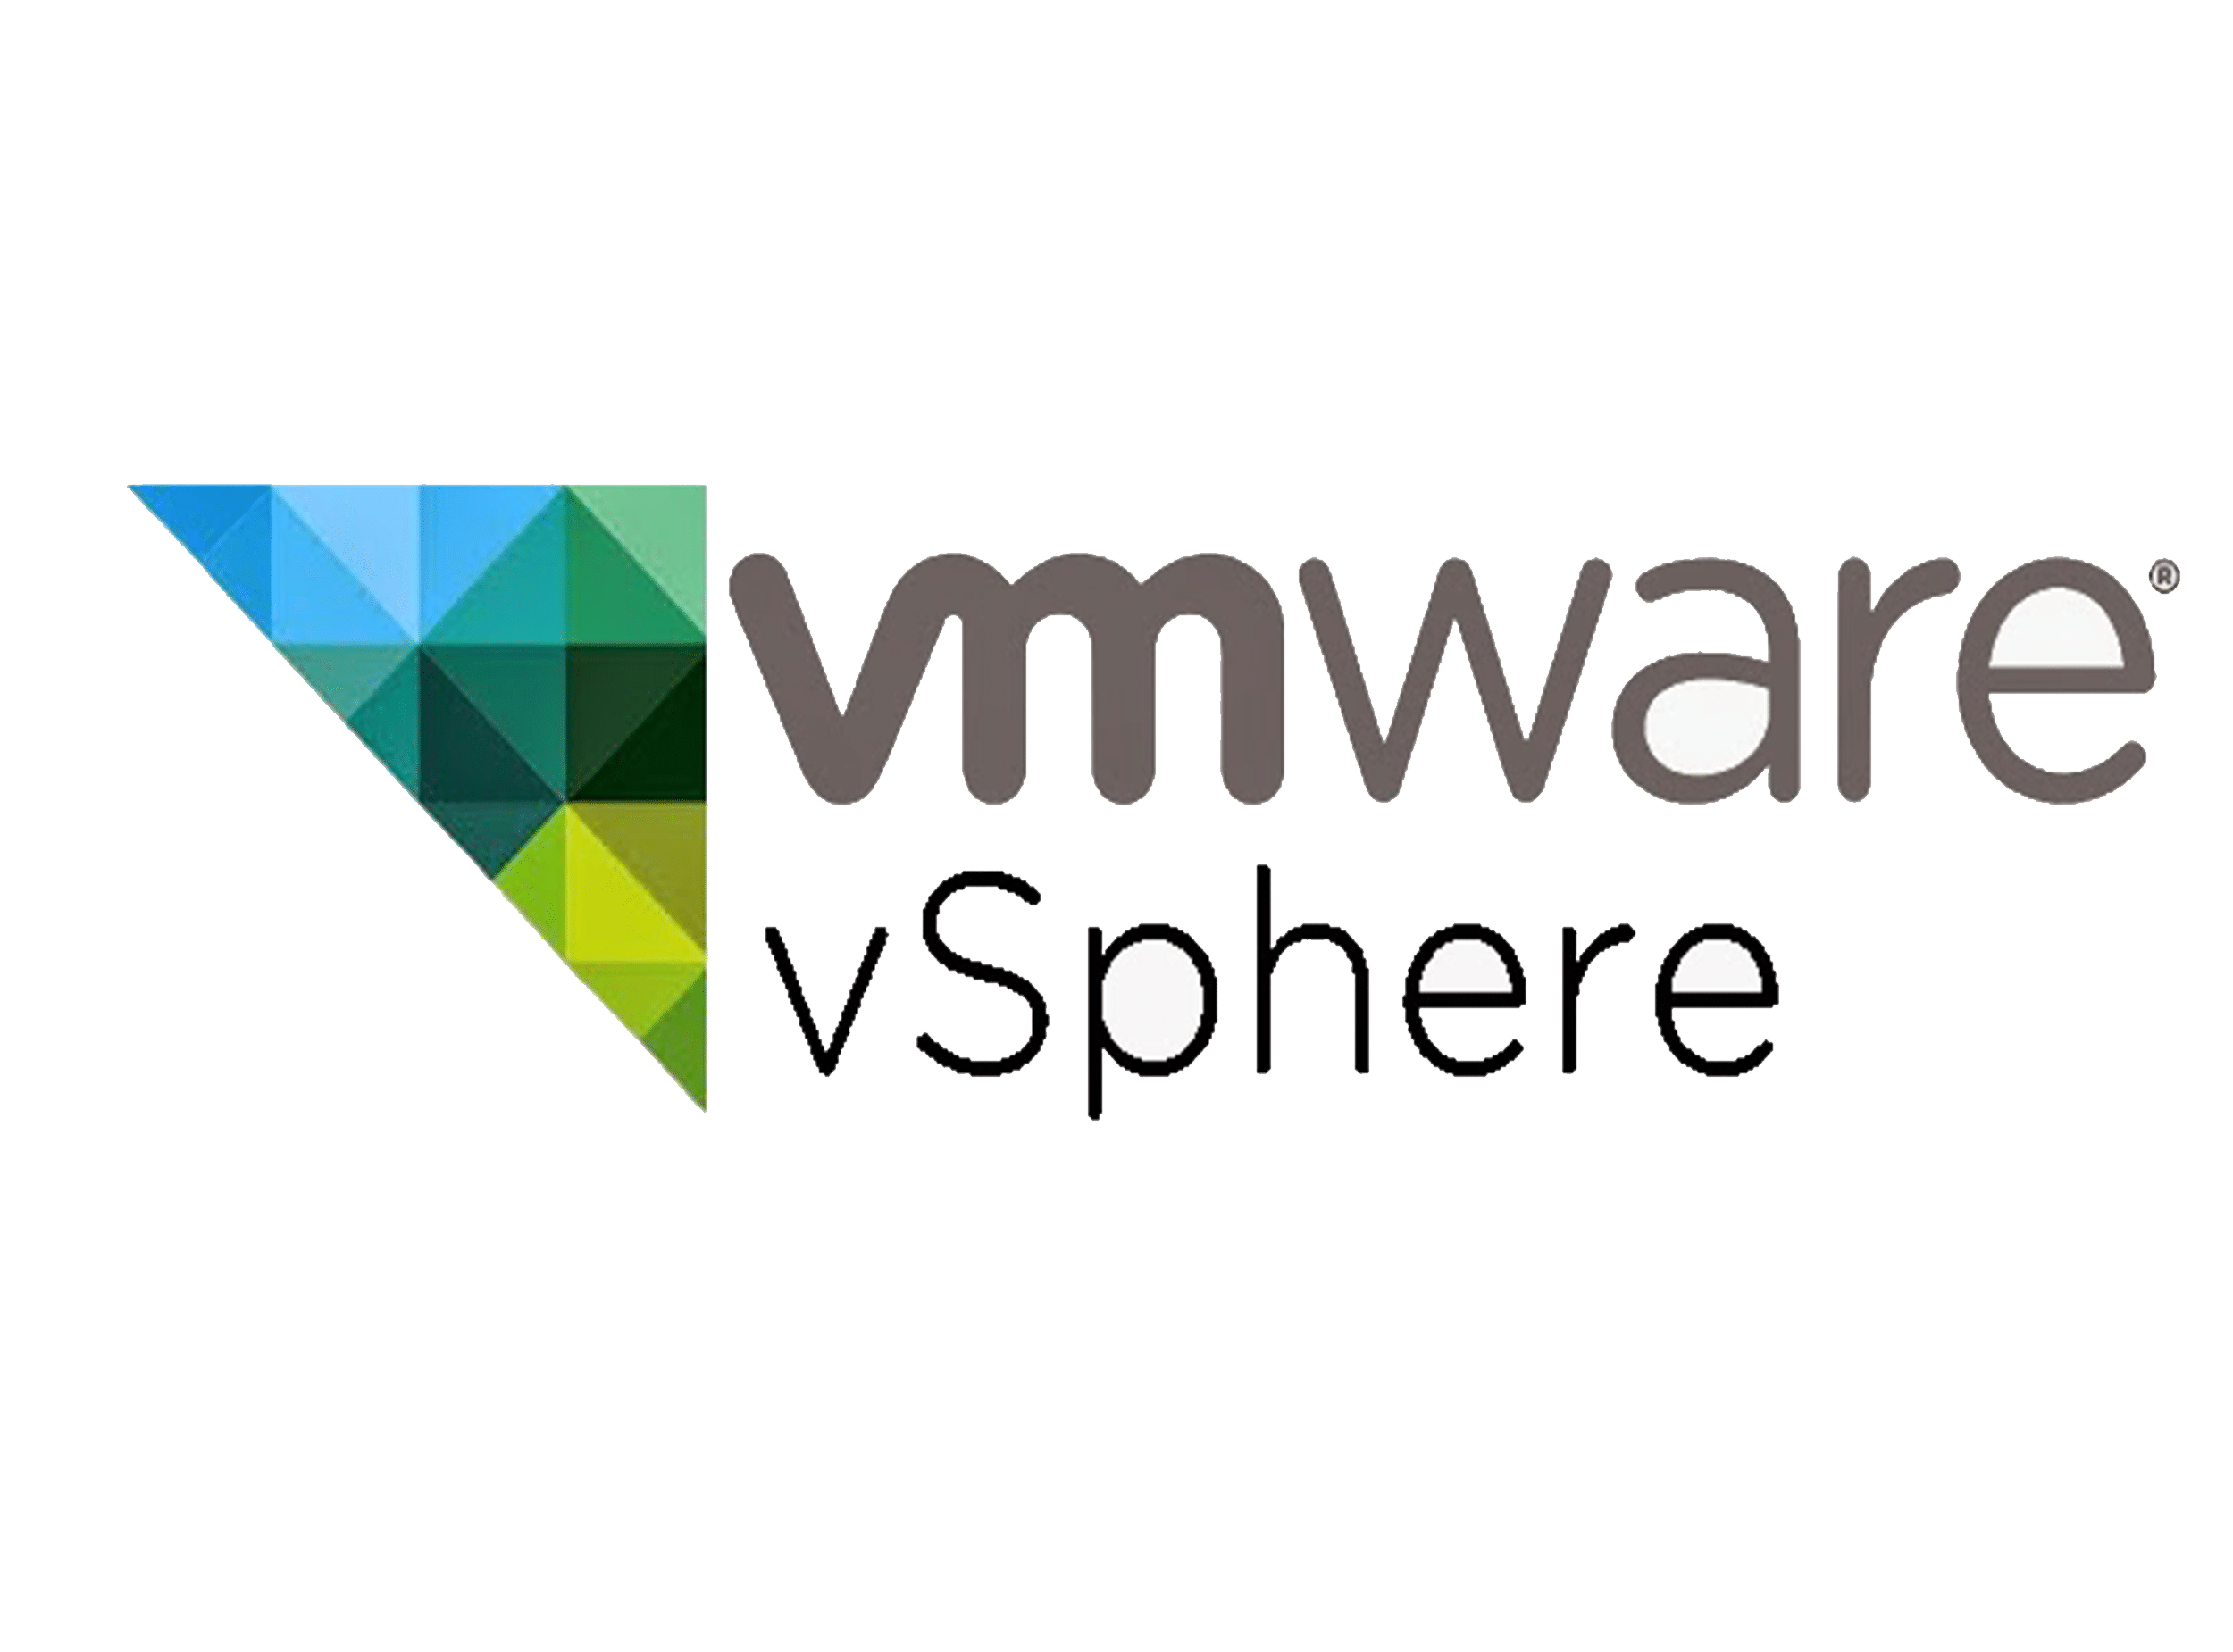 Vmware Logo Png, png collections at sccpre.cat.